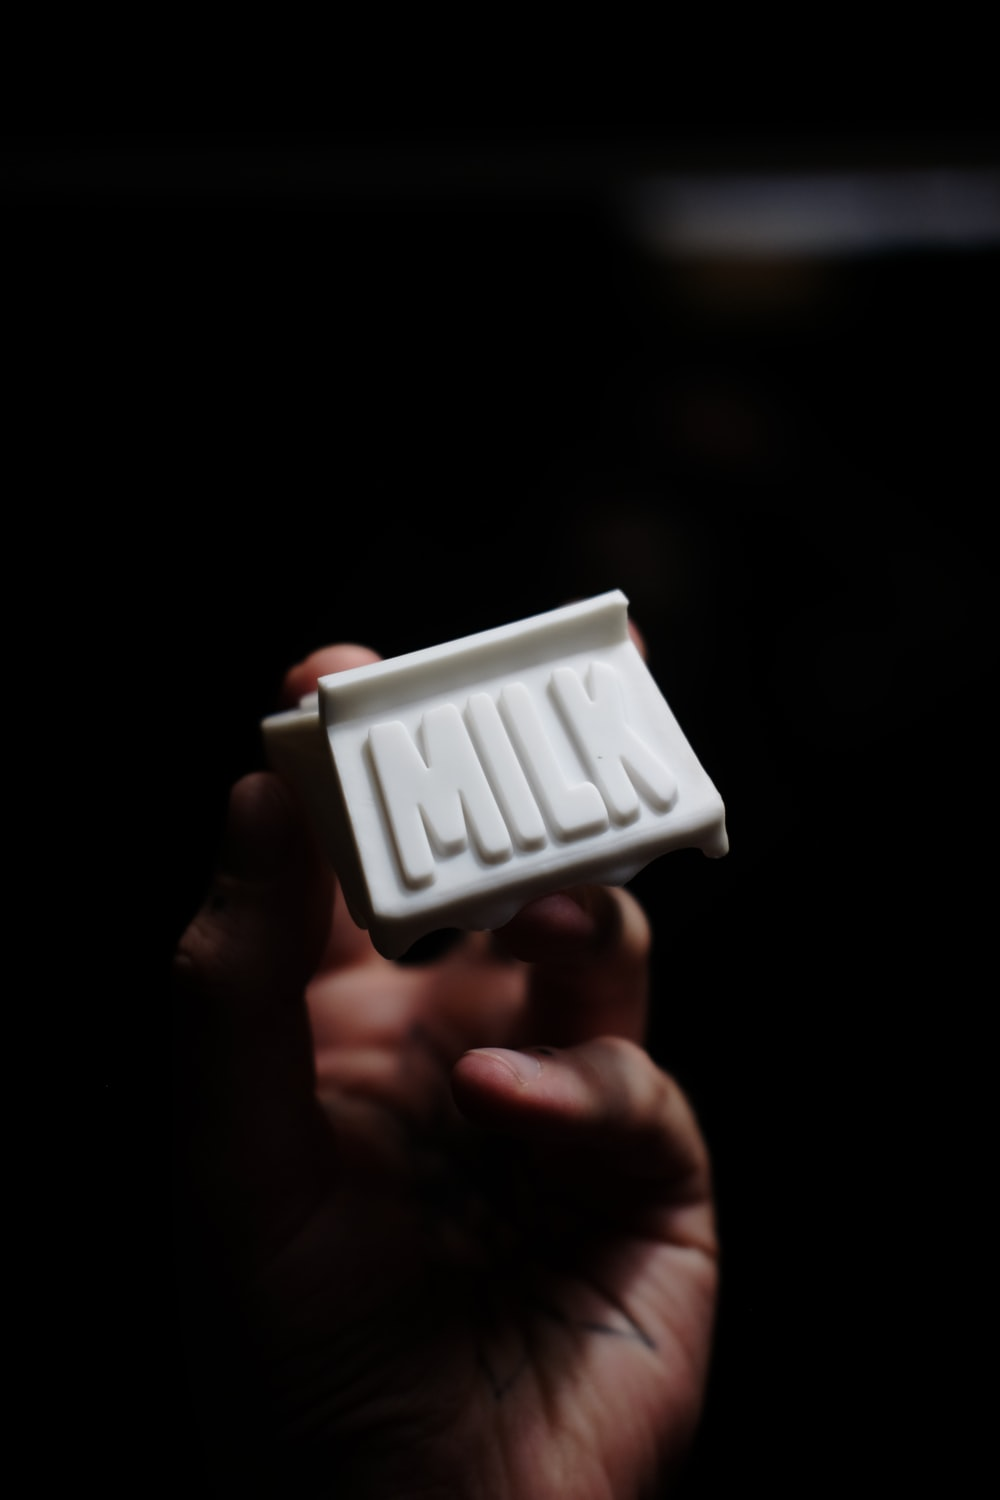 person holding white plastic container